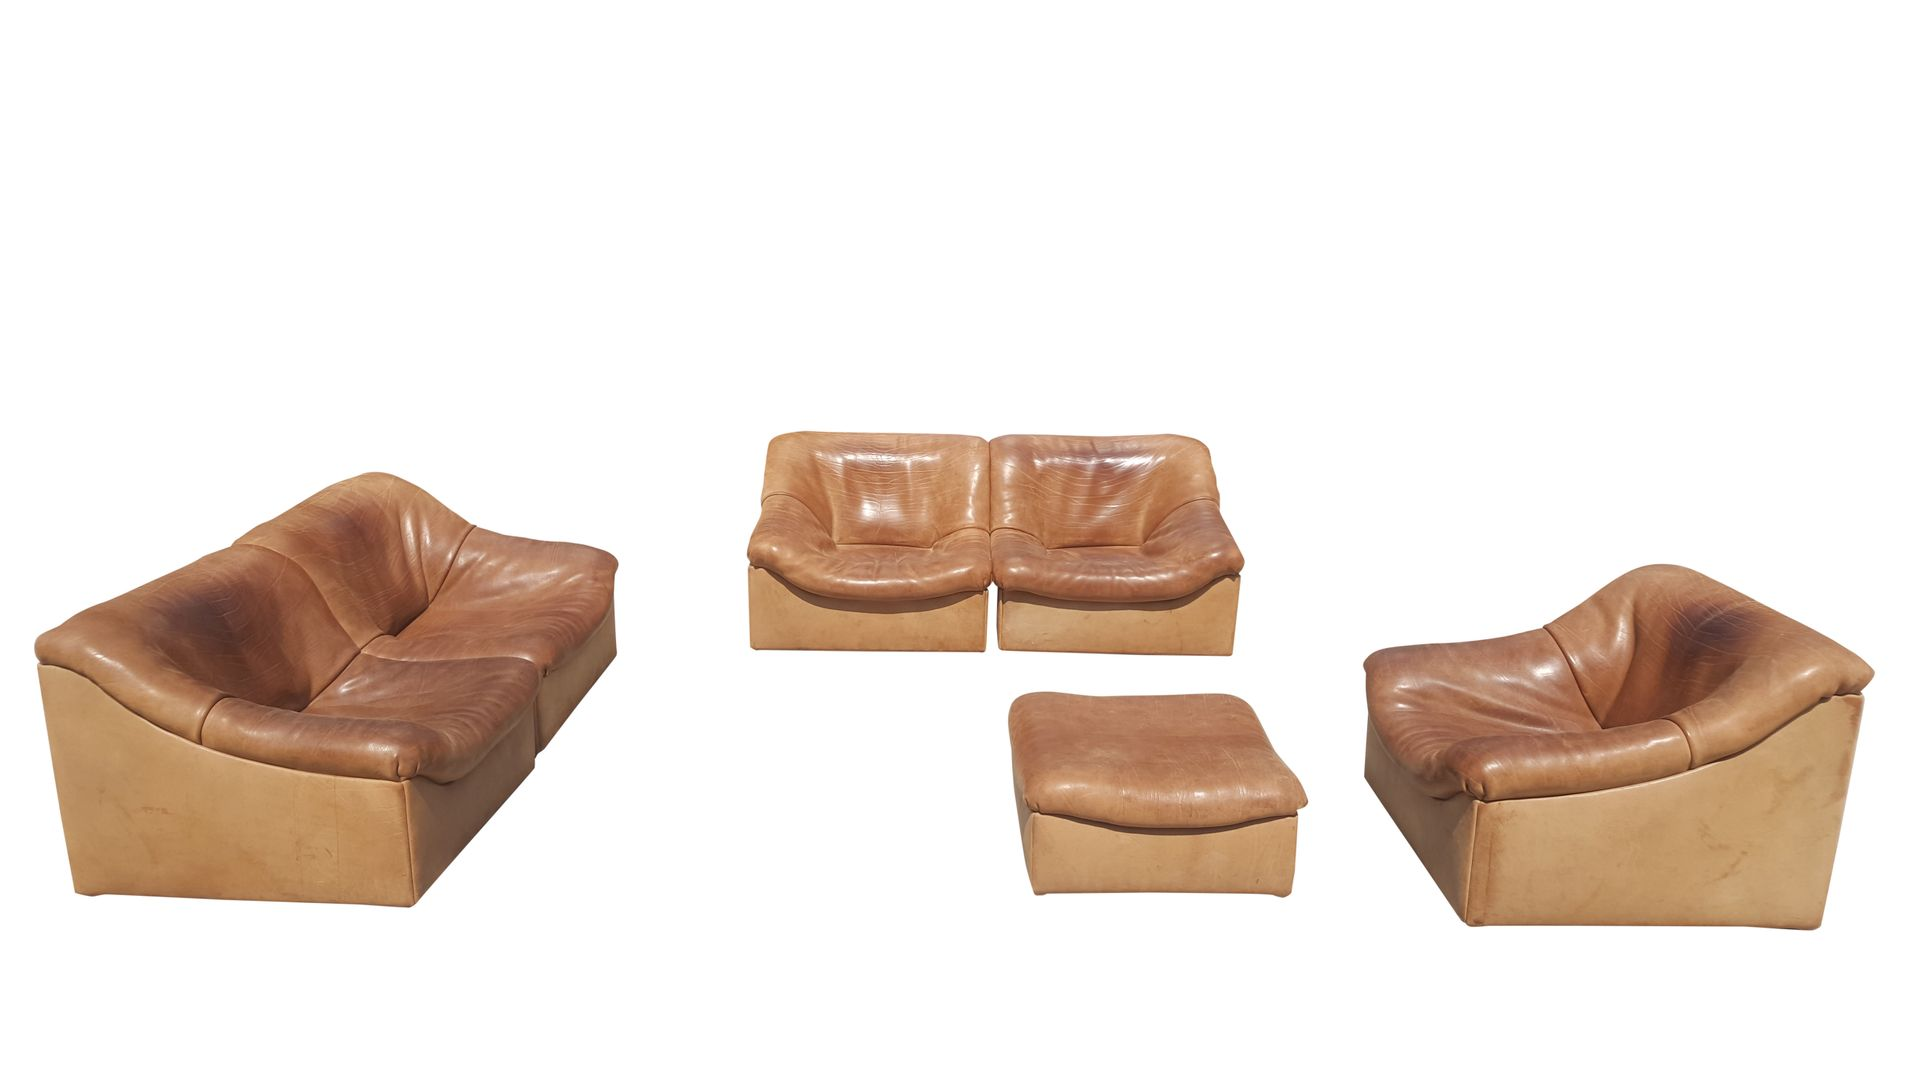 DS 46 Modular Sofa Set from de Sede 1970s for sale at Pamono